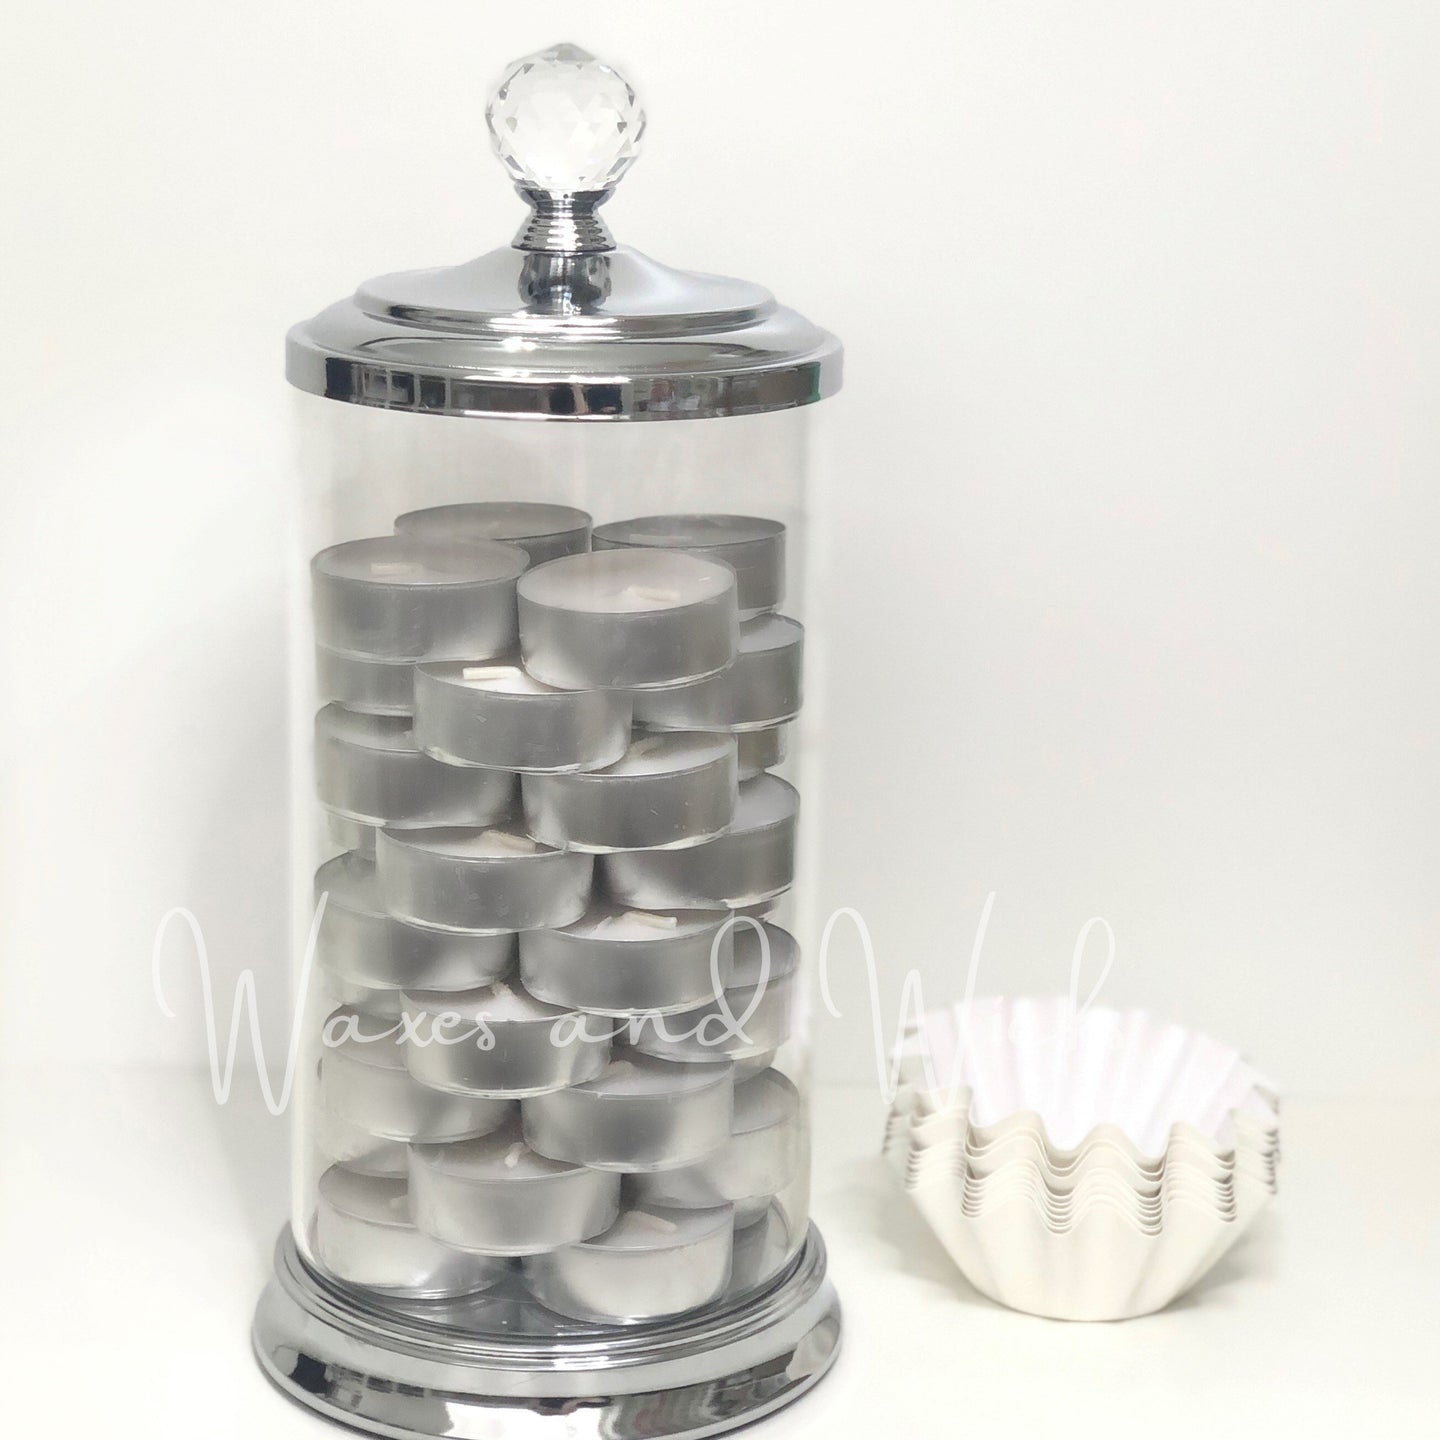 Crystal Top Storage Jar - Waxes and Wicks